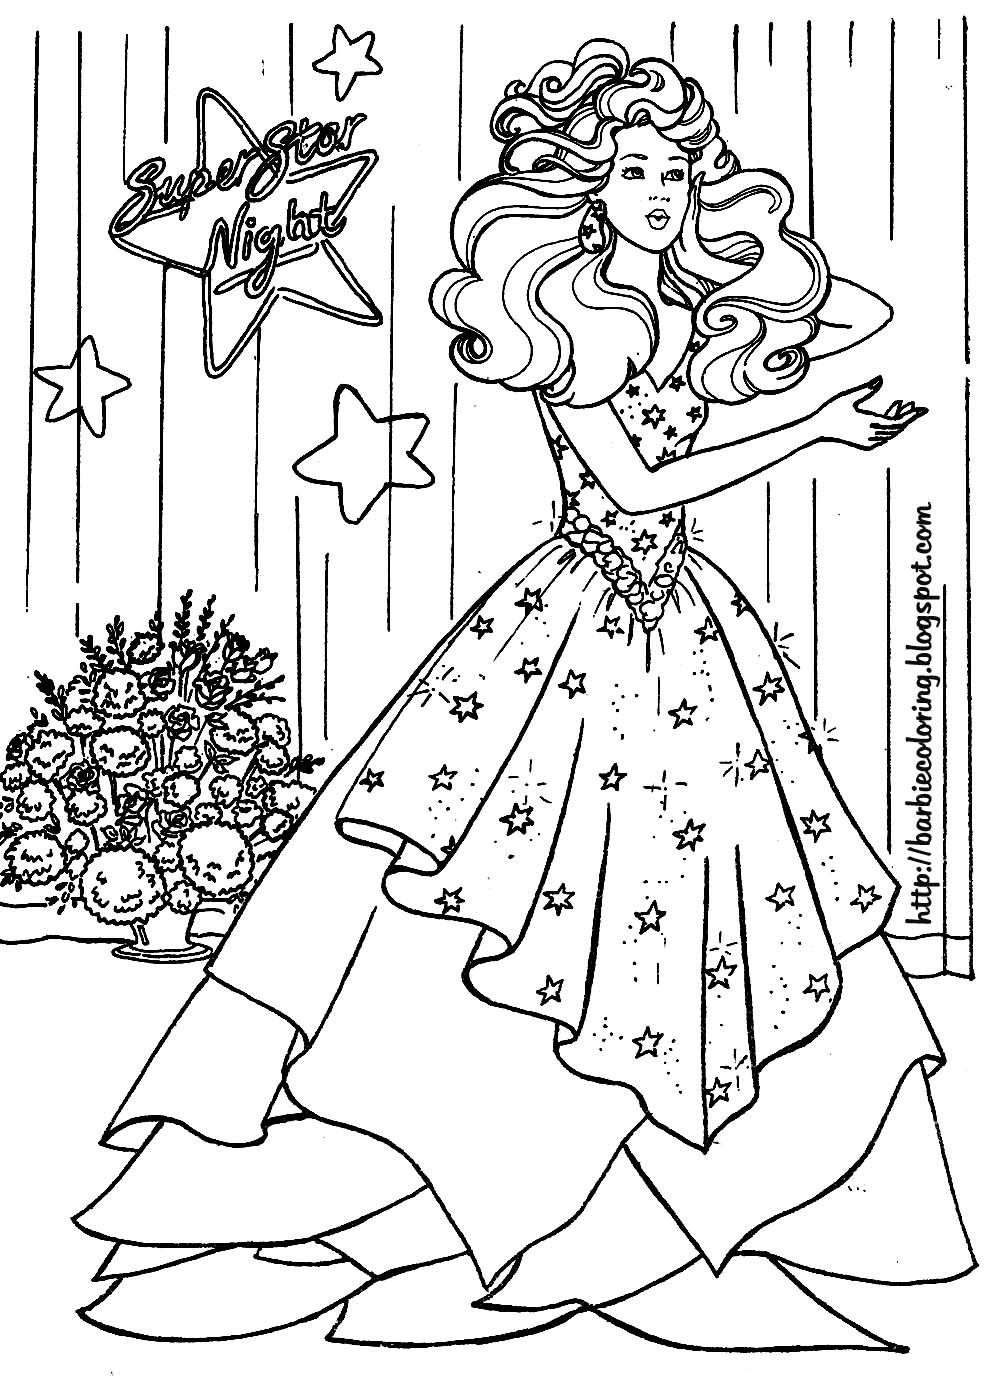 Barbie Coloring Pages Barbie Coloring Pages Barbie Bride And Barbie Superstar Coloring Barbie Coloring Pages Mermaid Coloring Pages Princess Coloring Pages